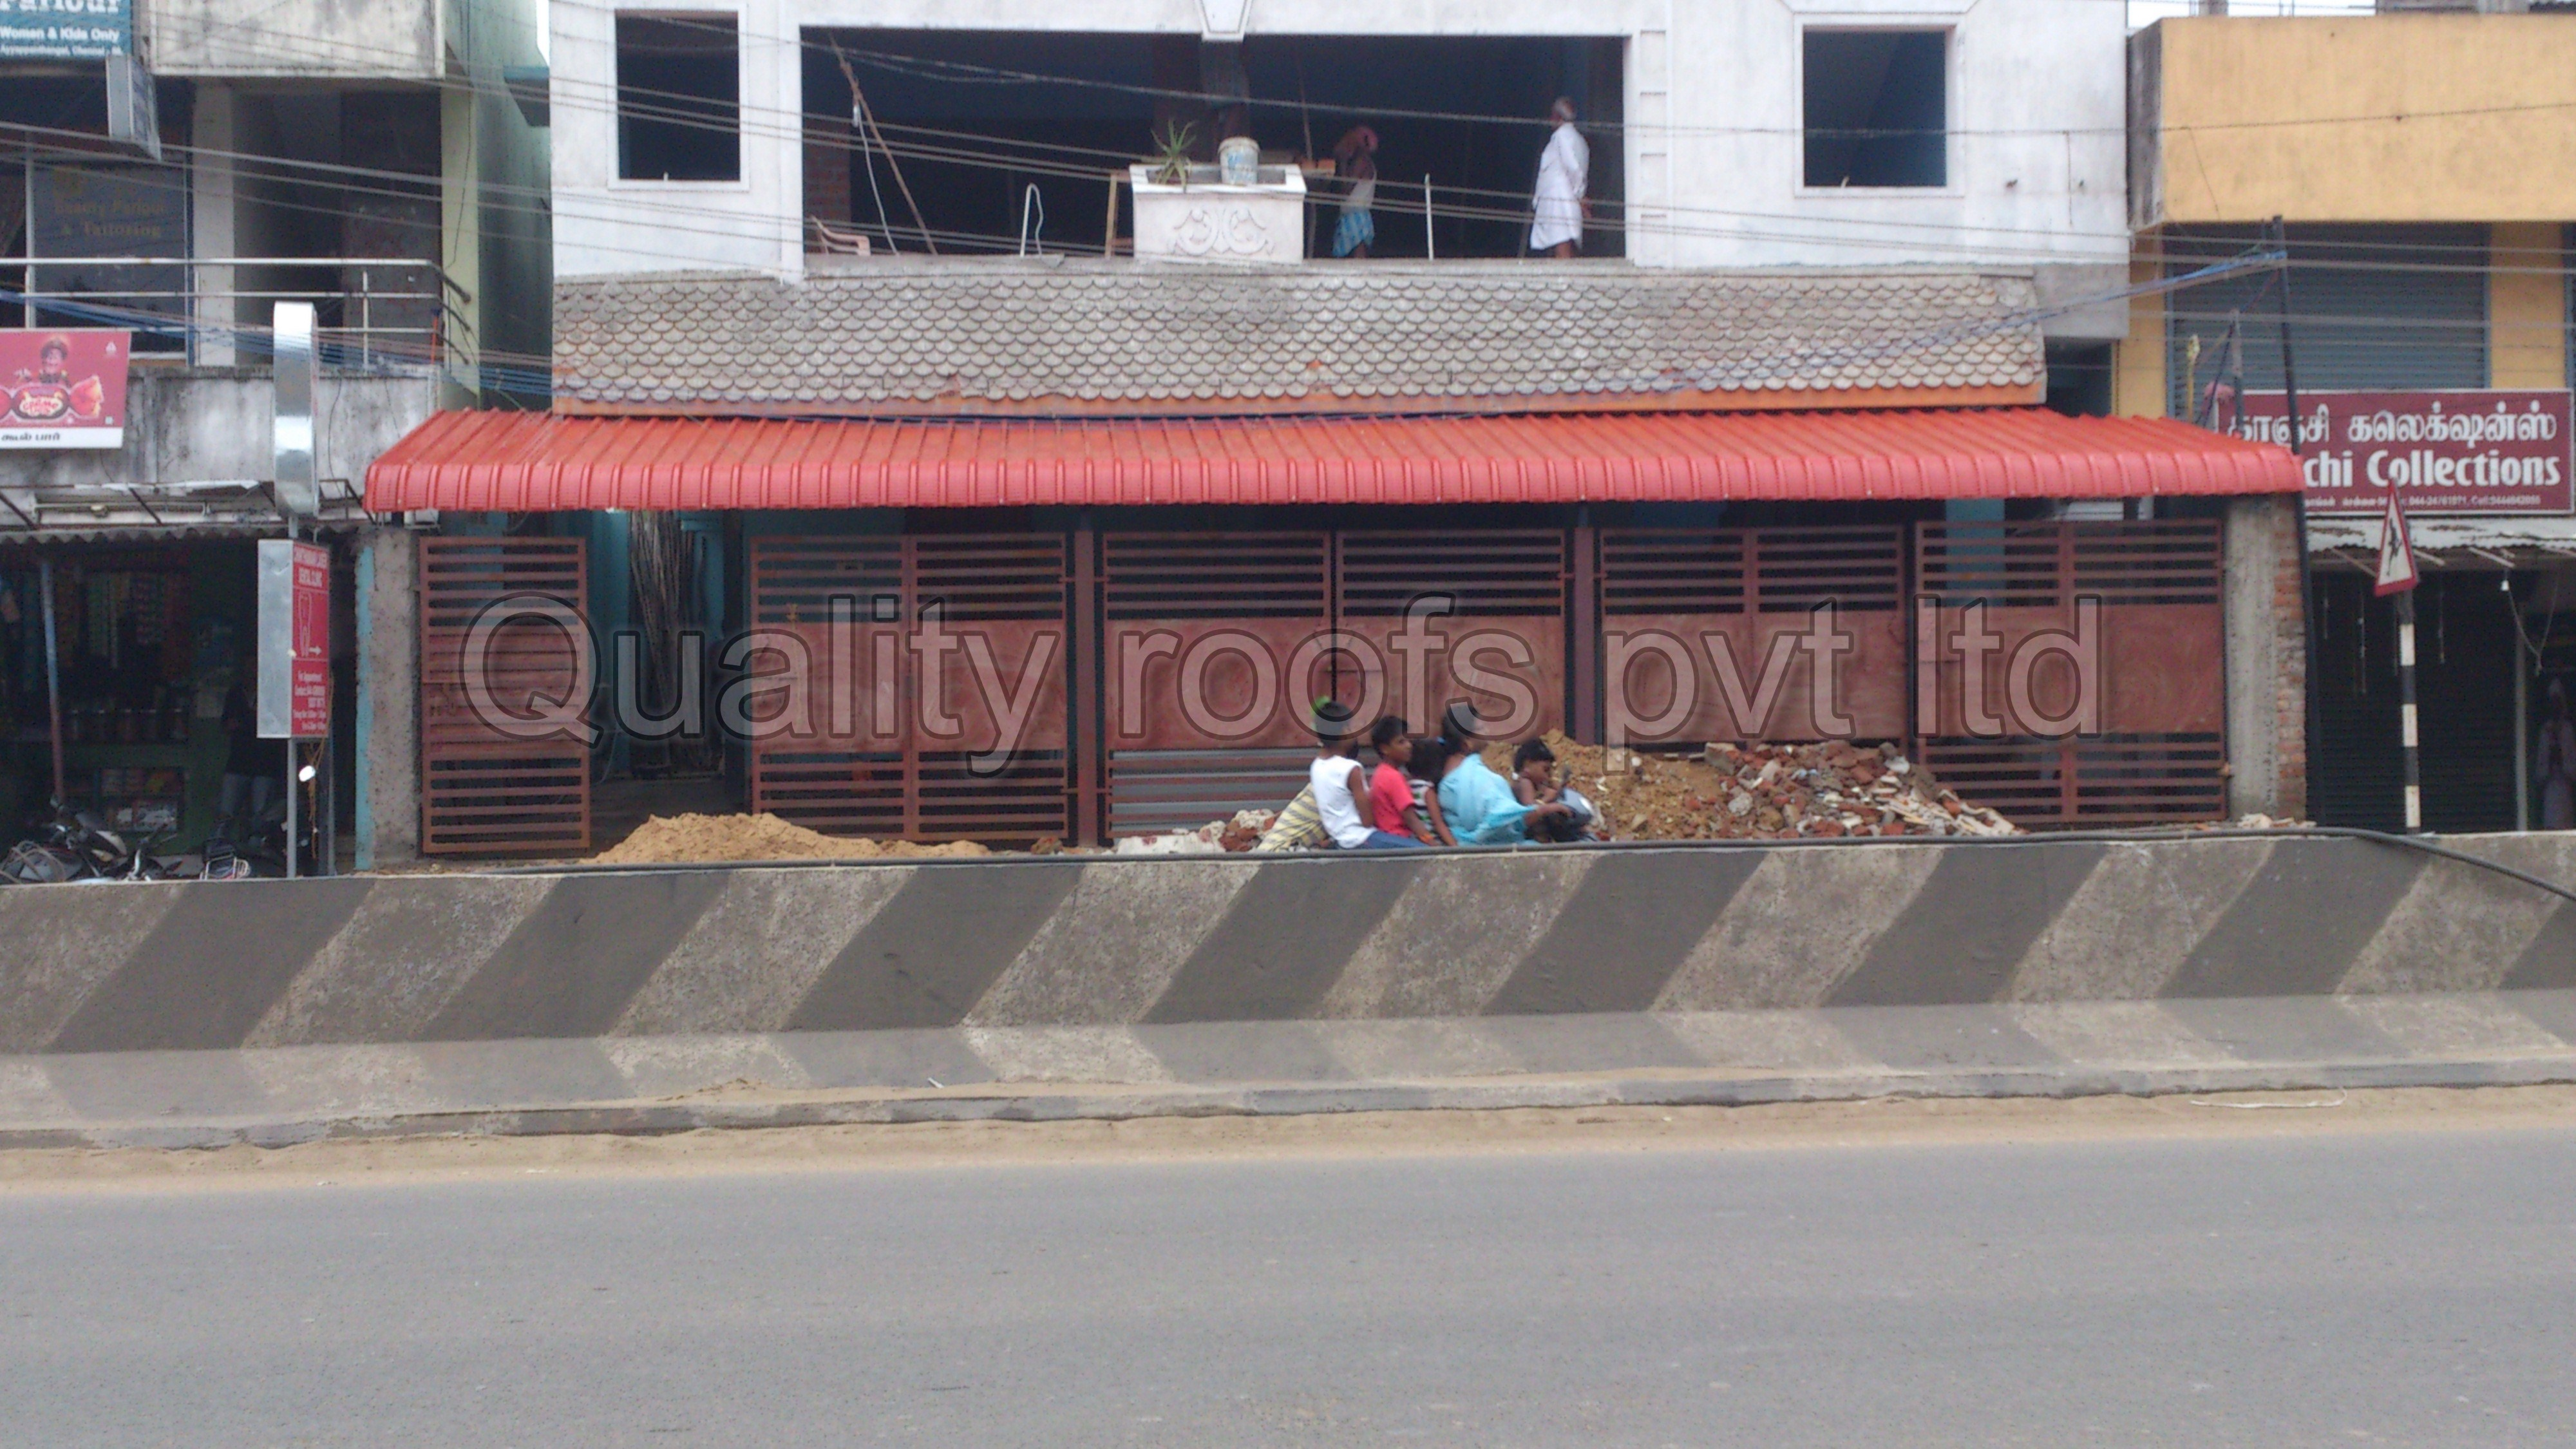 Roofing Shed Work In Chennai | Quality Roofs Pvt Ltd | Roofing Shed Work in Chennai, Polycarbonate Shed, Roofing Chennai, Roofing Sheet Installation Work , Polycarbonate Roofing Sheets - GL57097